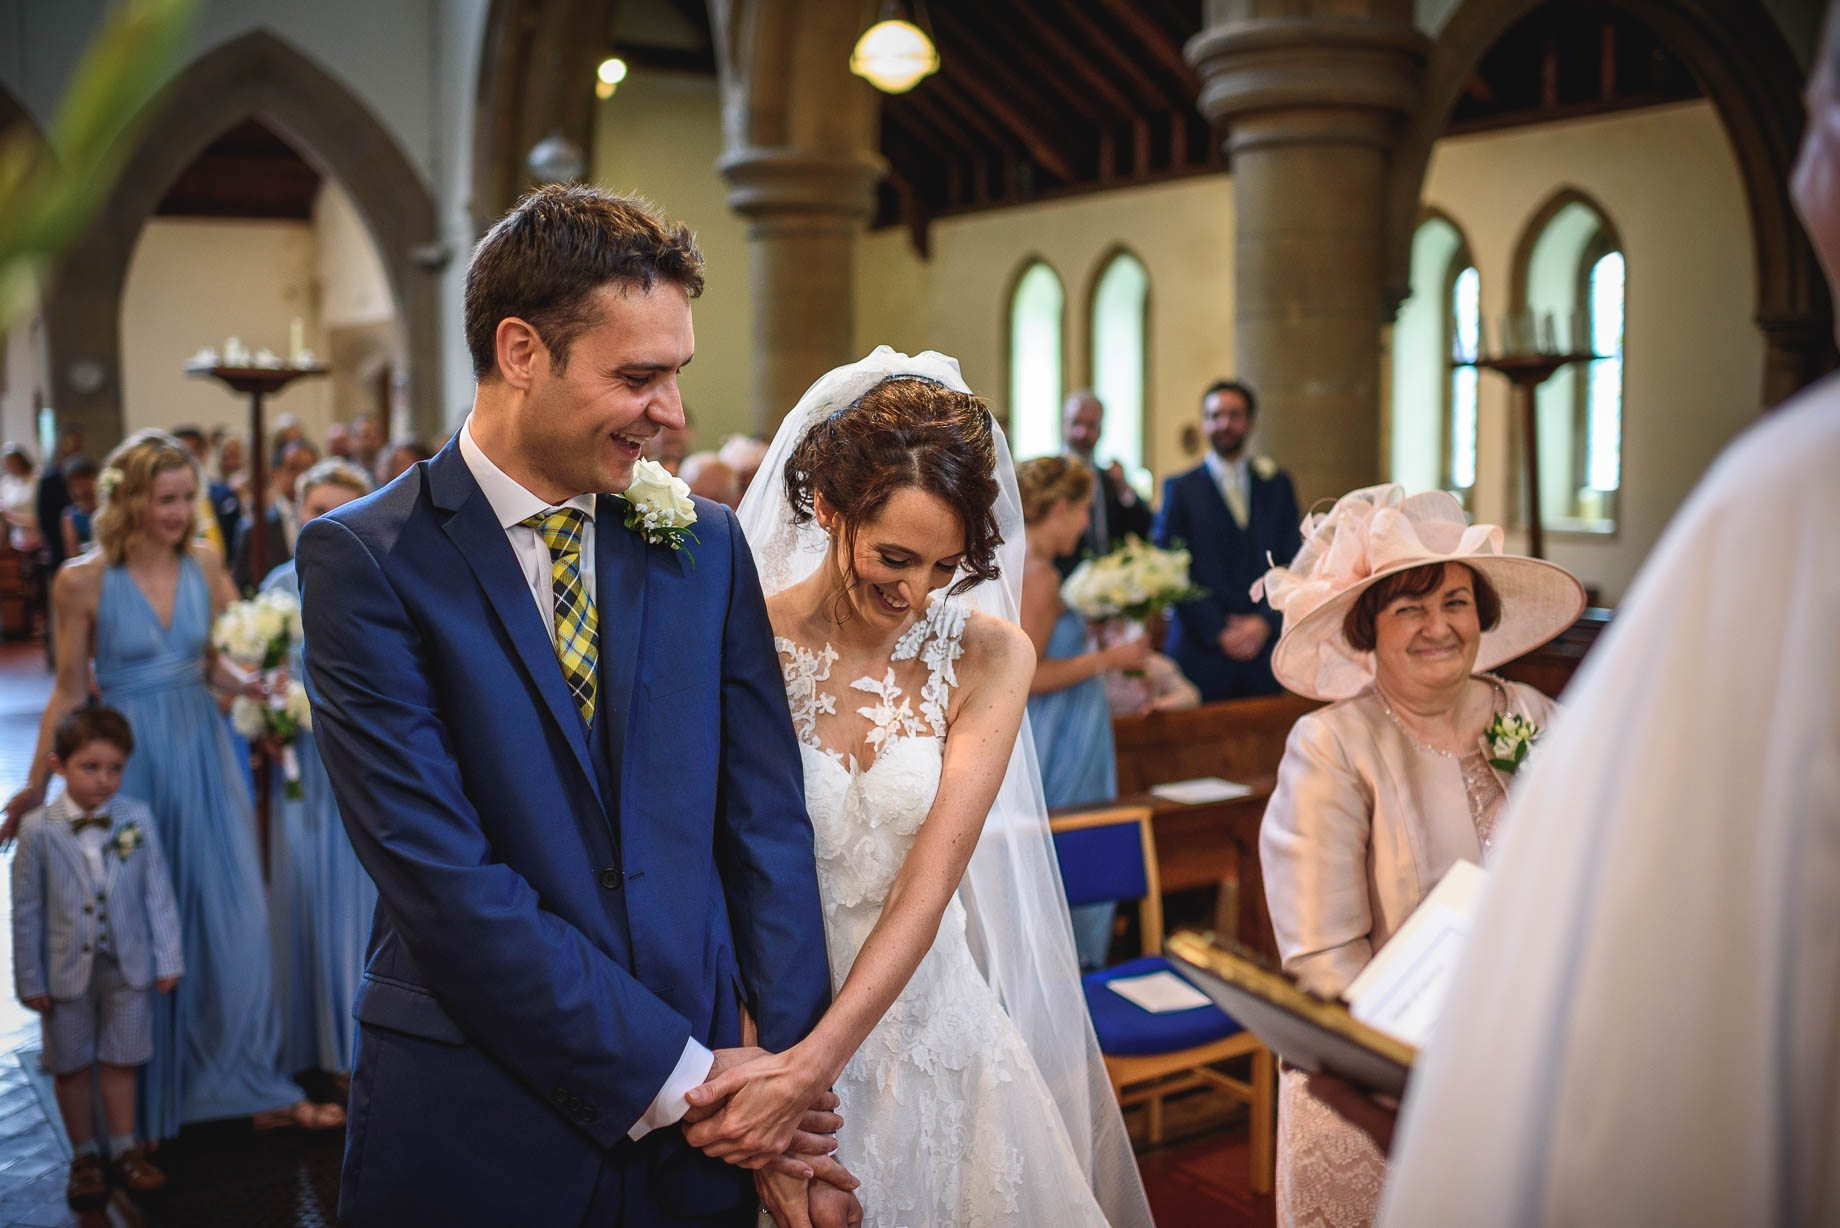 Hertfordshire wedding photography - Sarah and Stephen by Guy Collier Photography (58 of 161)